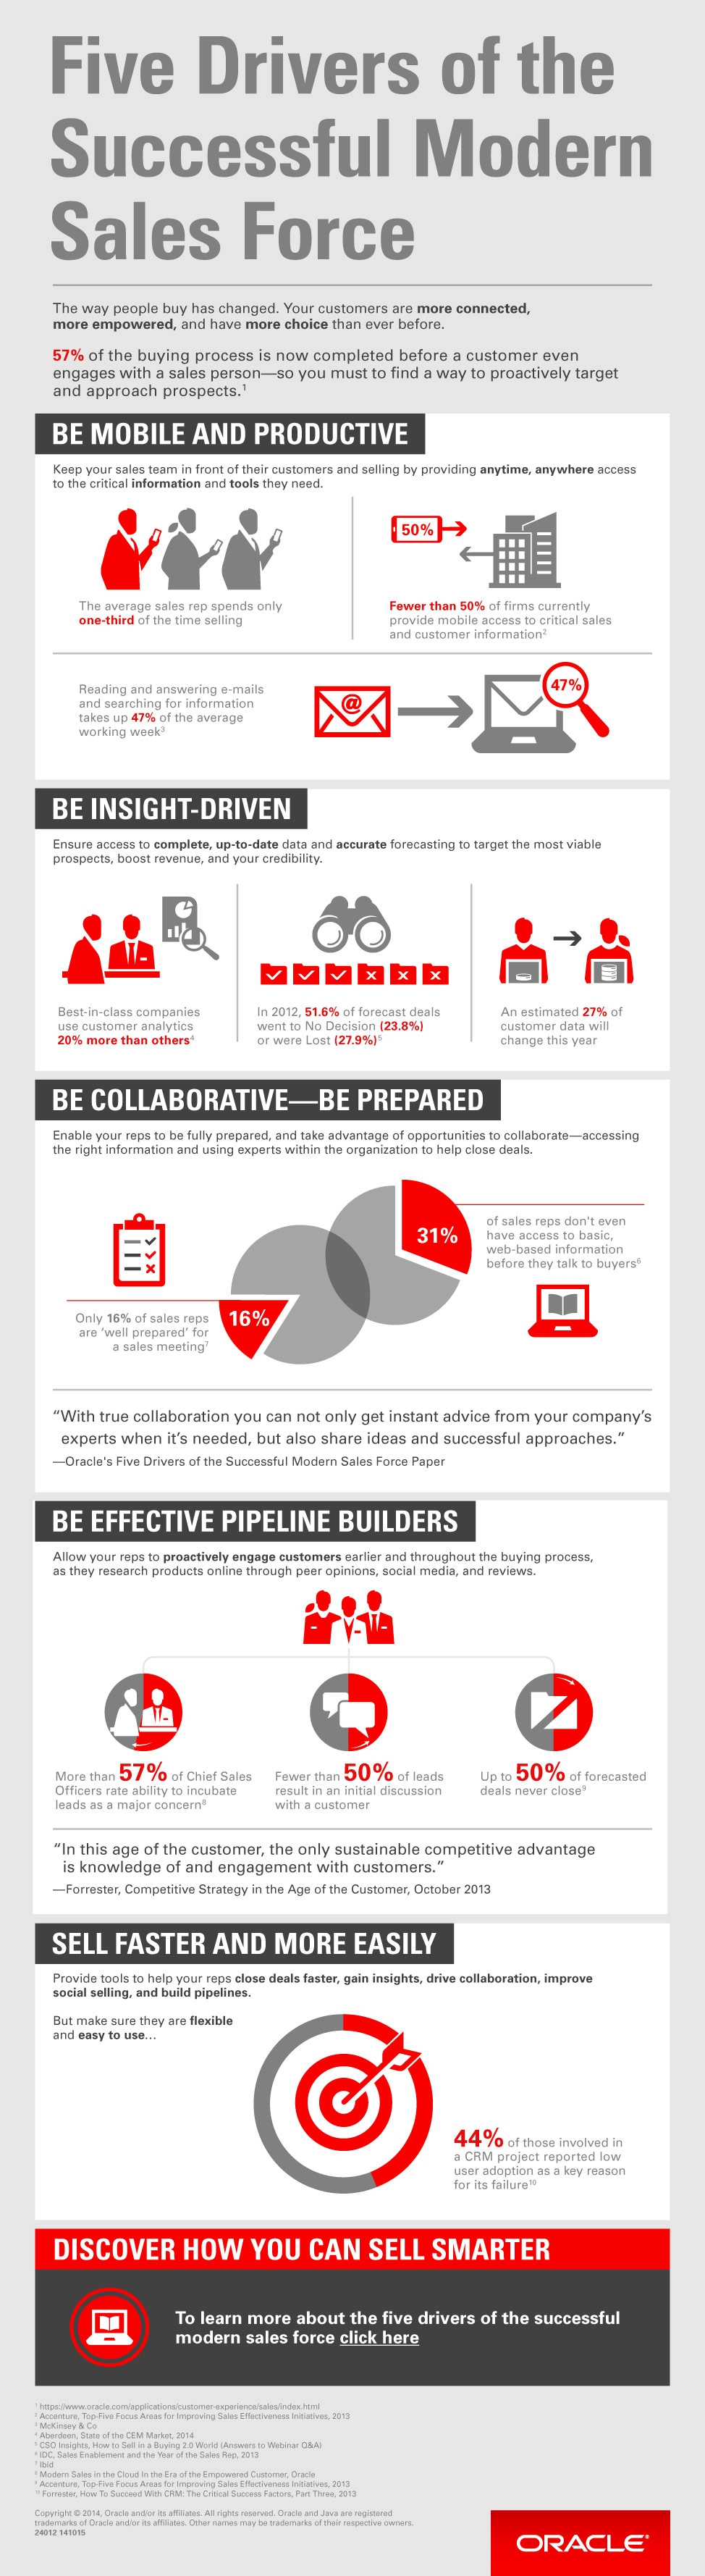 oracle_sales_force_infographic_2342011.jpg